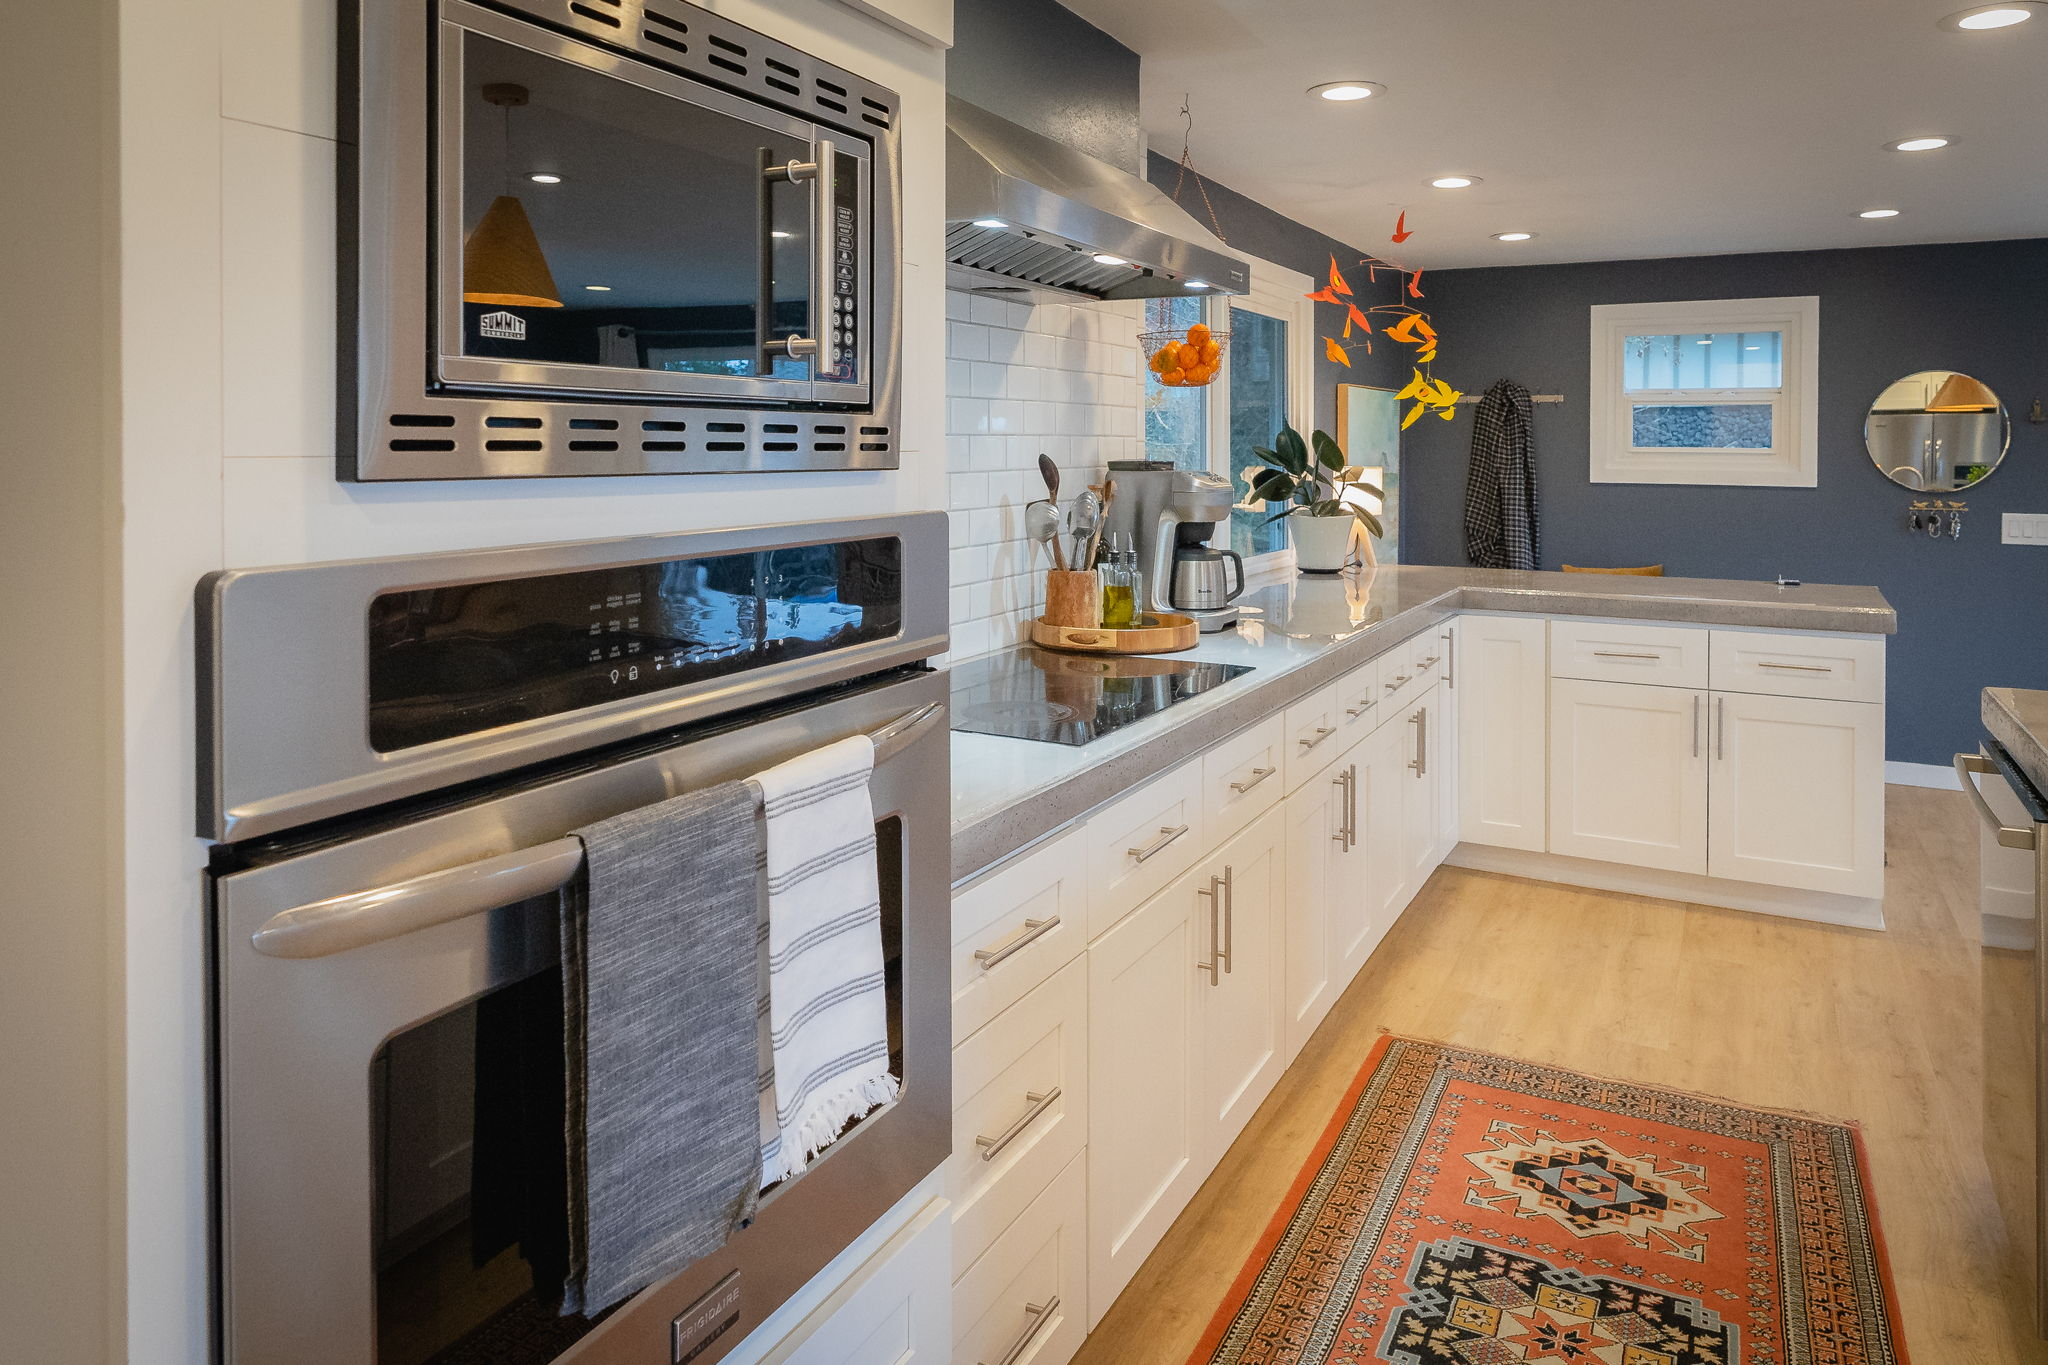 Plenty of storage and stainless steel appliances